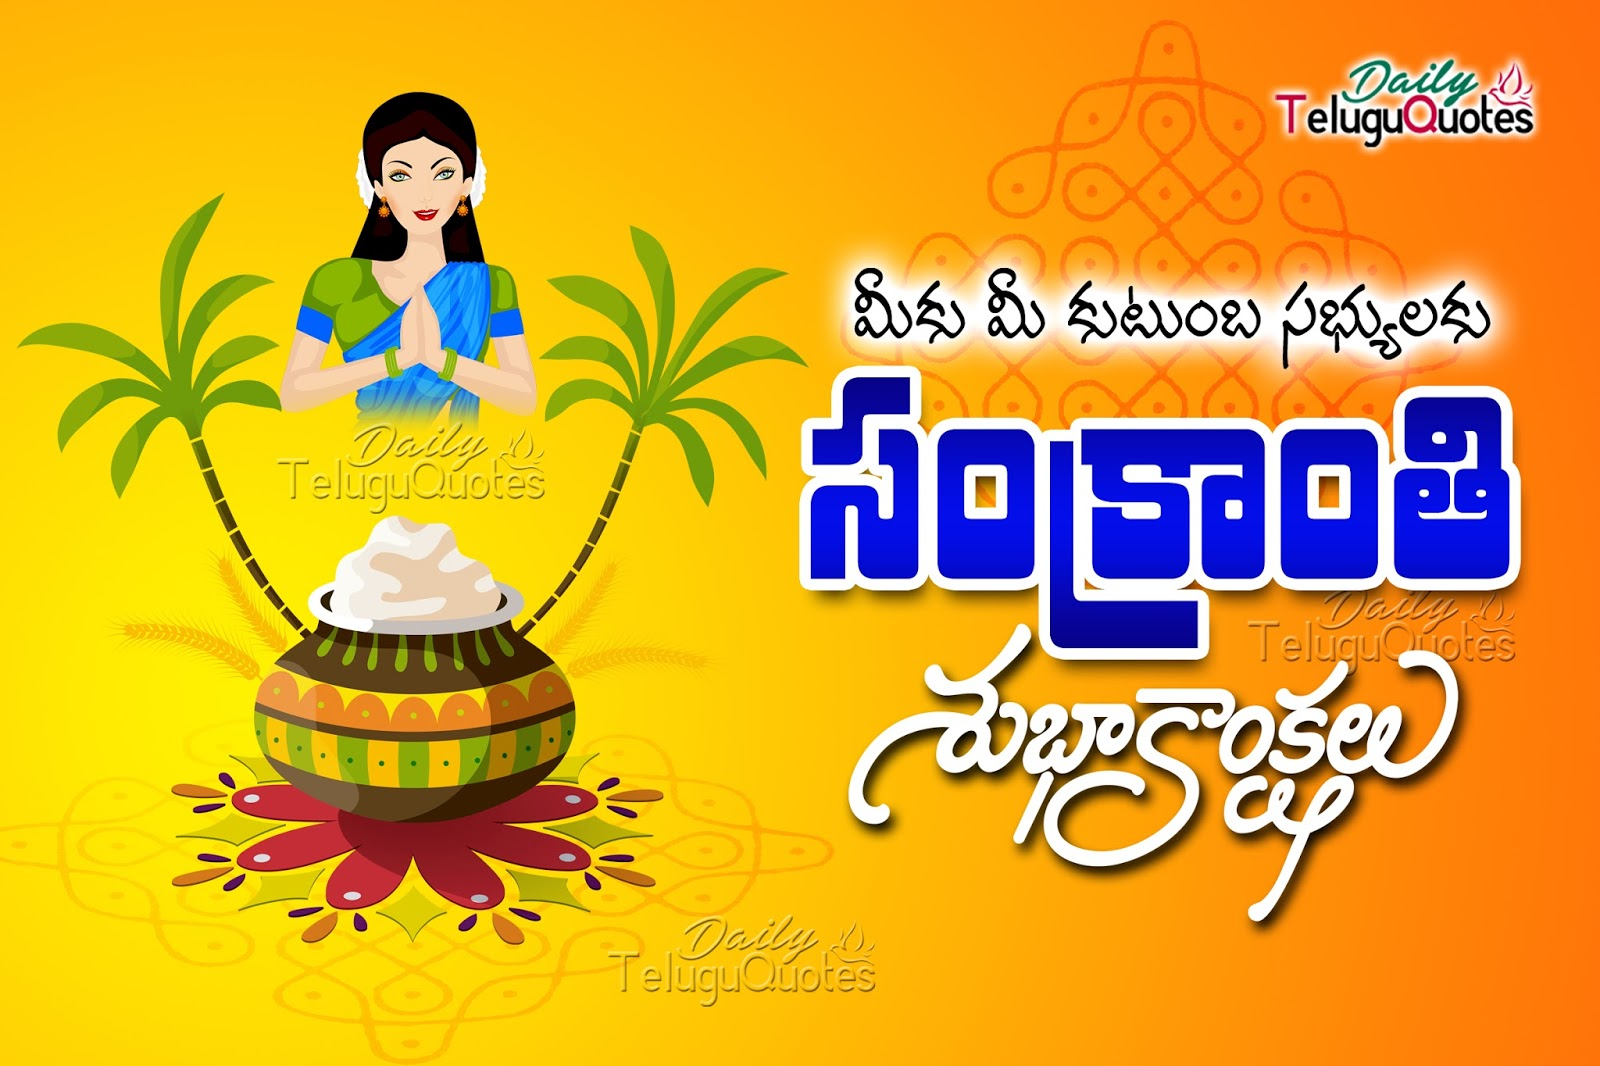 Makara sankranthi wishes quotes greetings with quotes in telugu sankranthi subhakankshalu pongal designs invitations greetings telugu wallpapers m4hsunfo